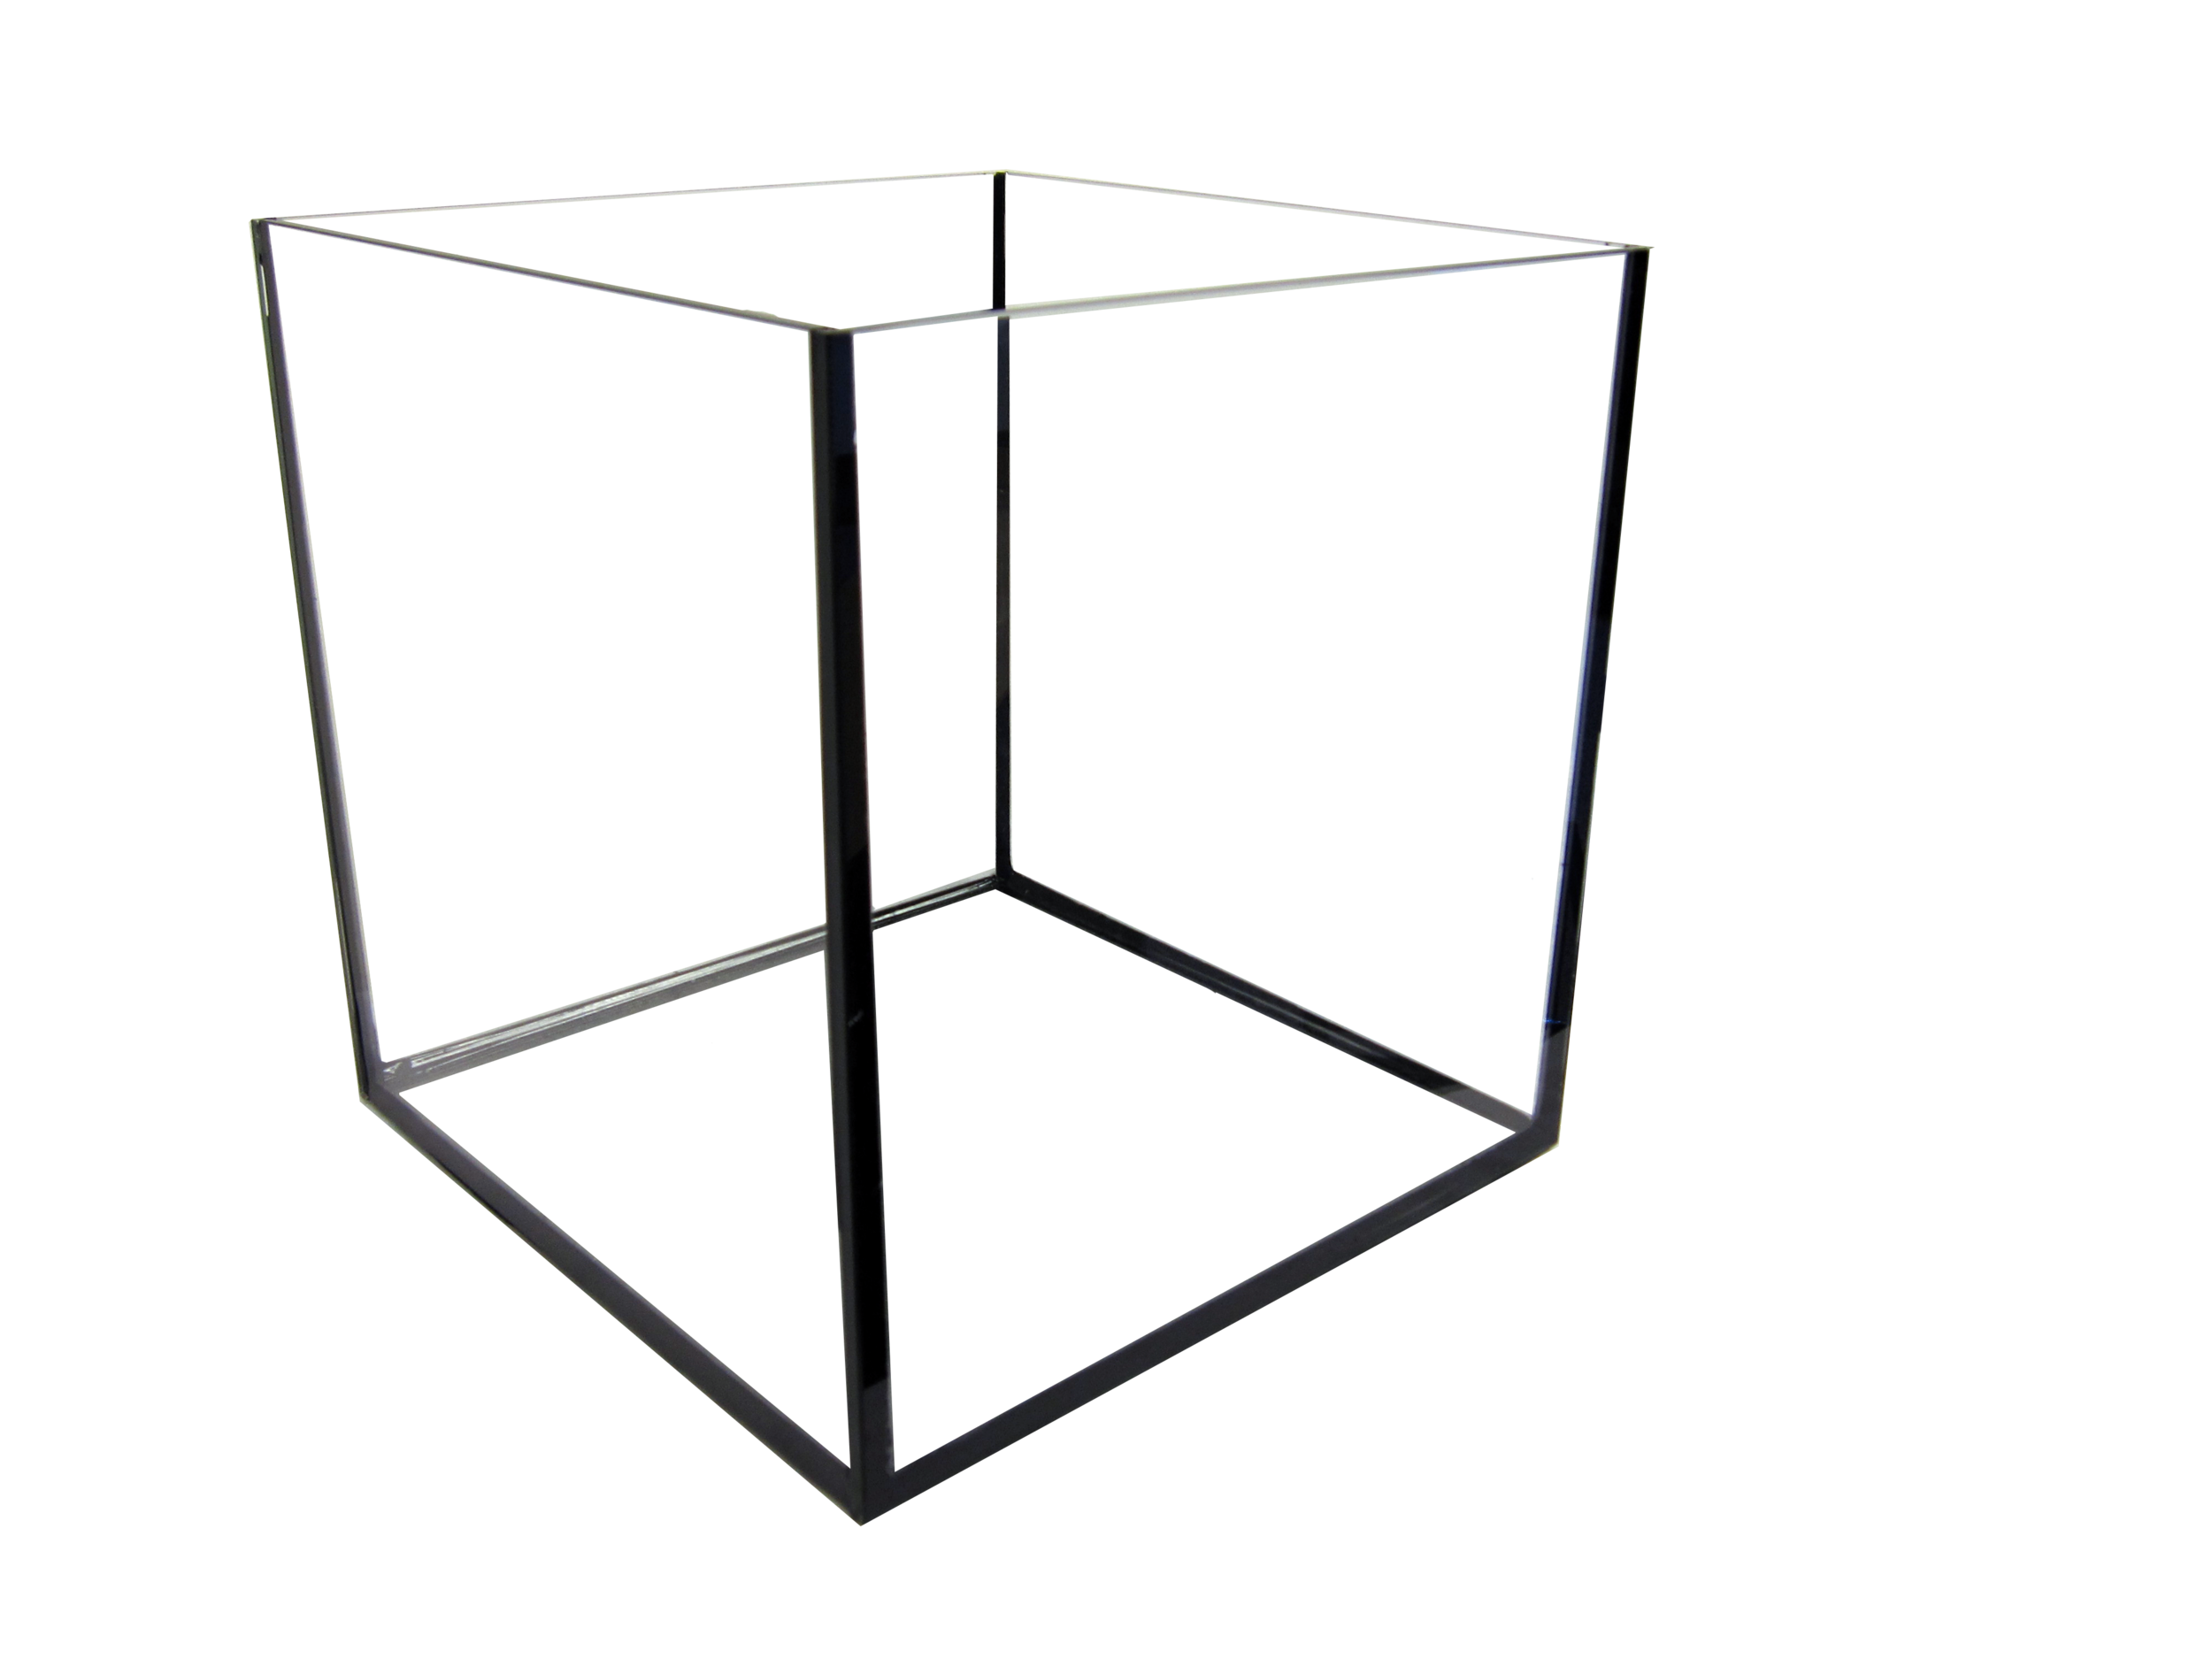 "12 Cube Rimless Aquarium  SKU#: AM11443  UPC#: 7-49729-11443-7  Product Dimension: 11.75""x11.75""x12""  Capacity: Approximately 7.2 gallons  Weight: 12.1 lbs"